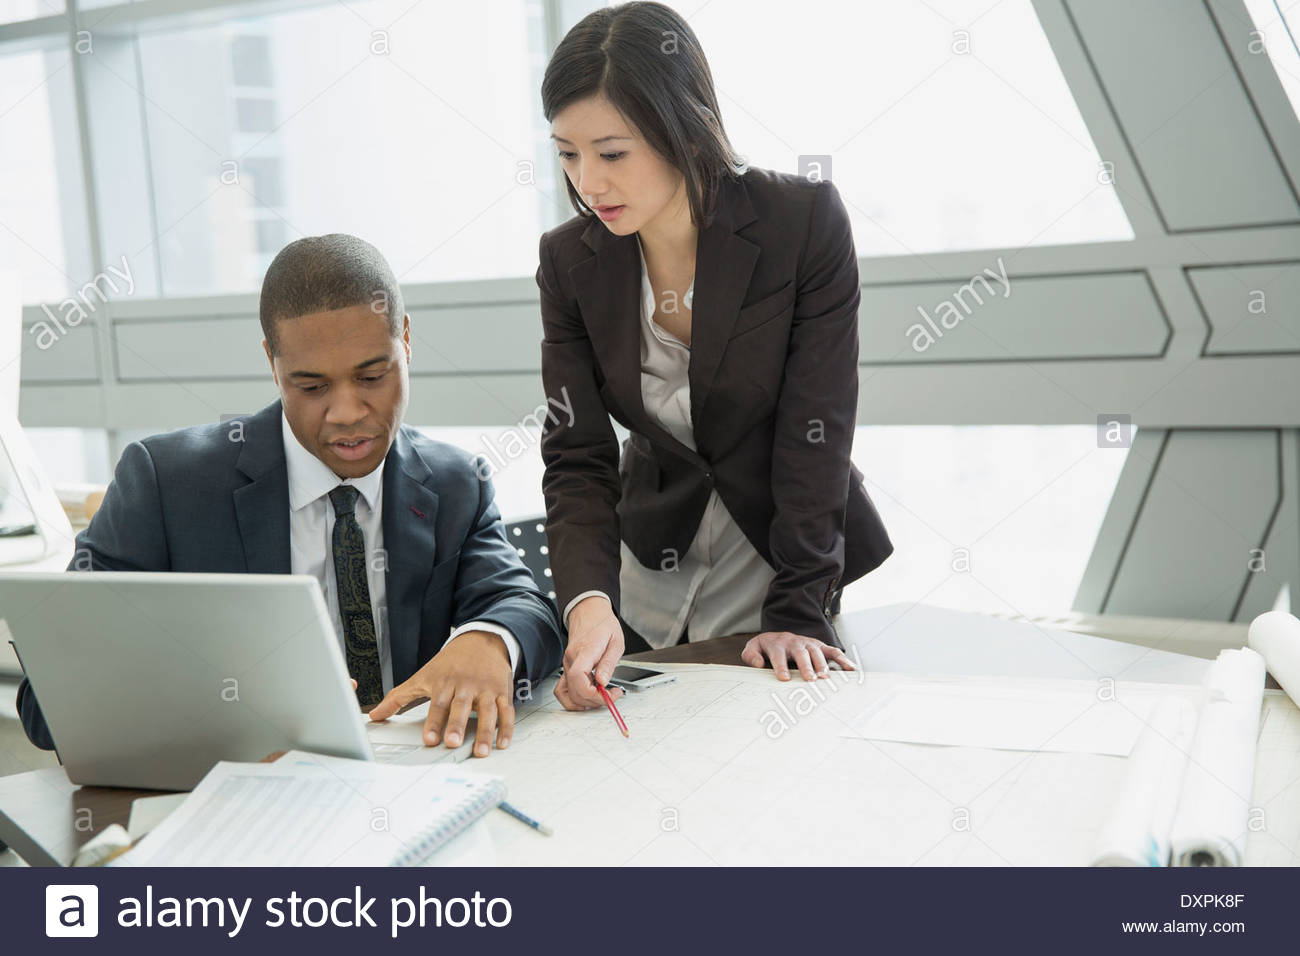 Colleagues using laptop and reviewing blueprints at desk - Stock Image